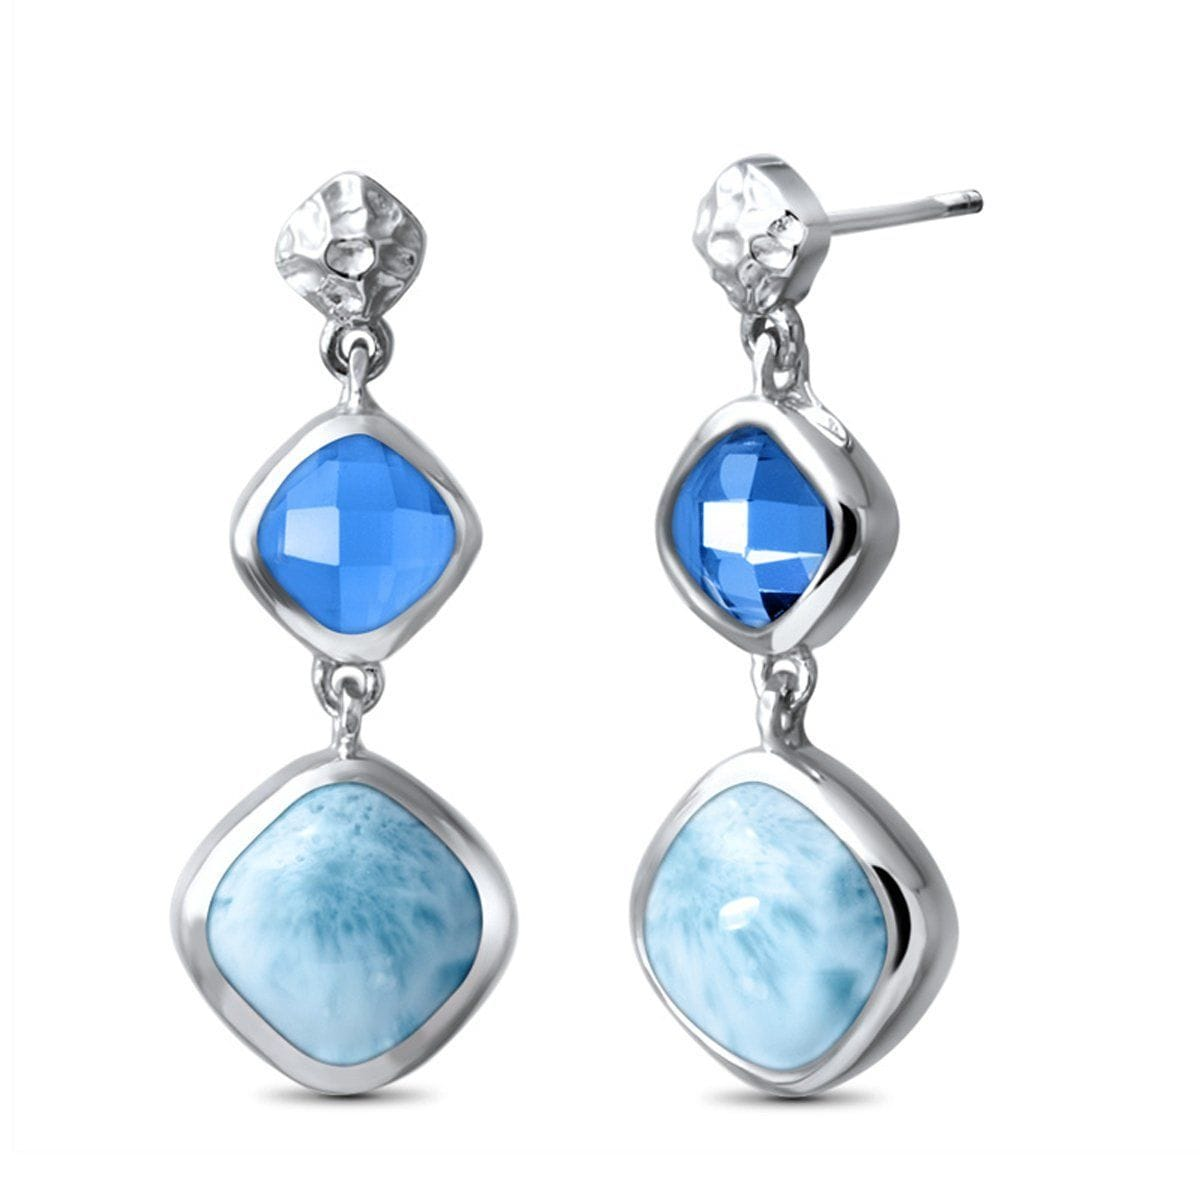 Faceta Blue Topaz Earrings - Eface00-00-Marahlago Larimar-Renee Taylor Gallery